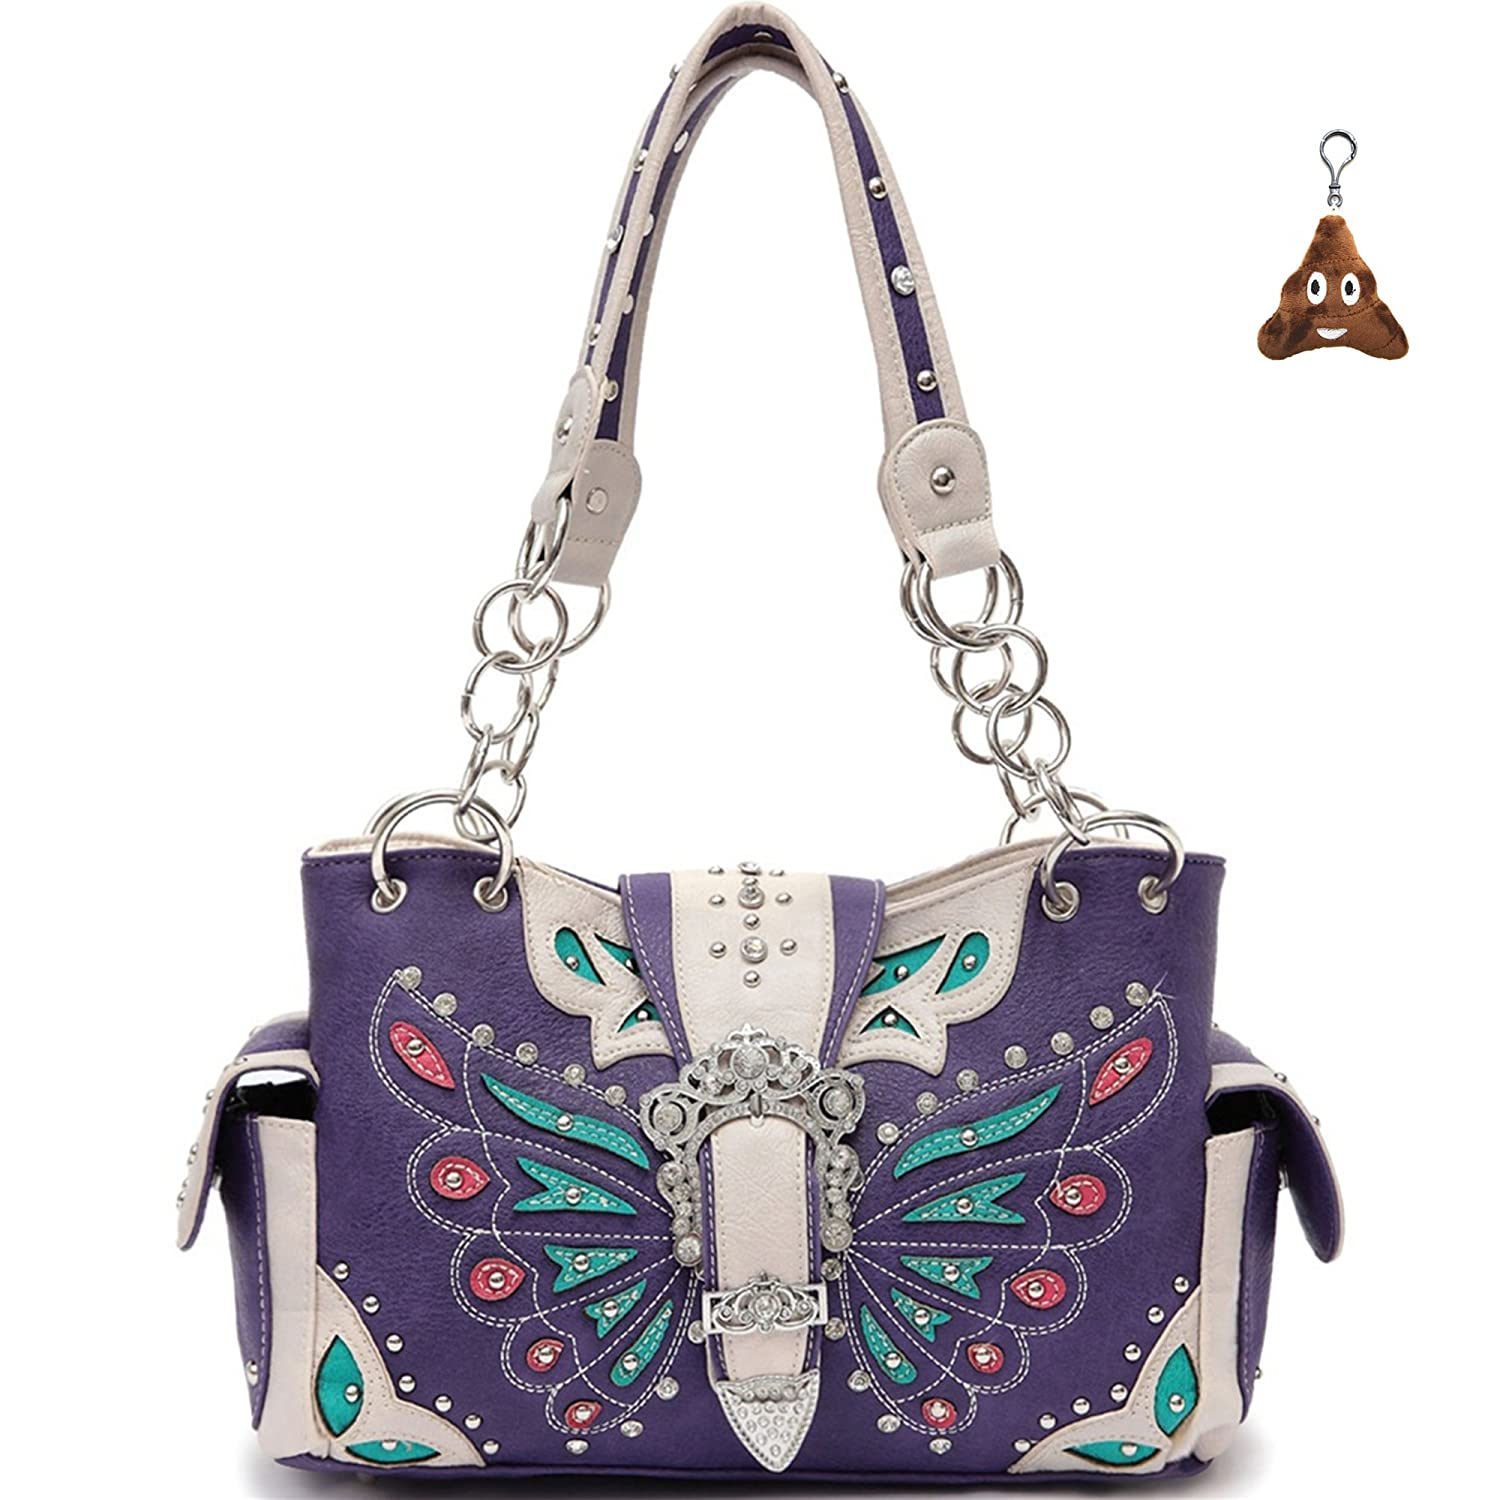 Cowgirl Trendy Western Concealed Carry Butterfly Belt Buckle Purse Handbag Messenger Shoulder Bag Purple